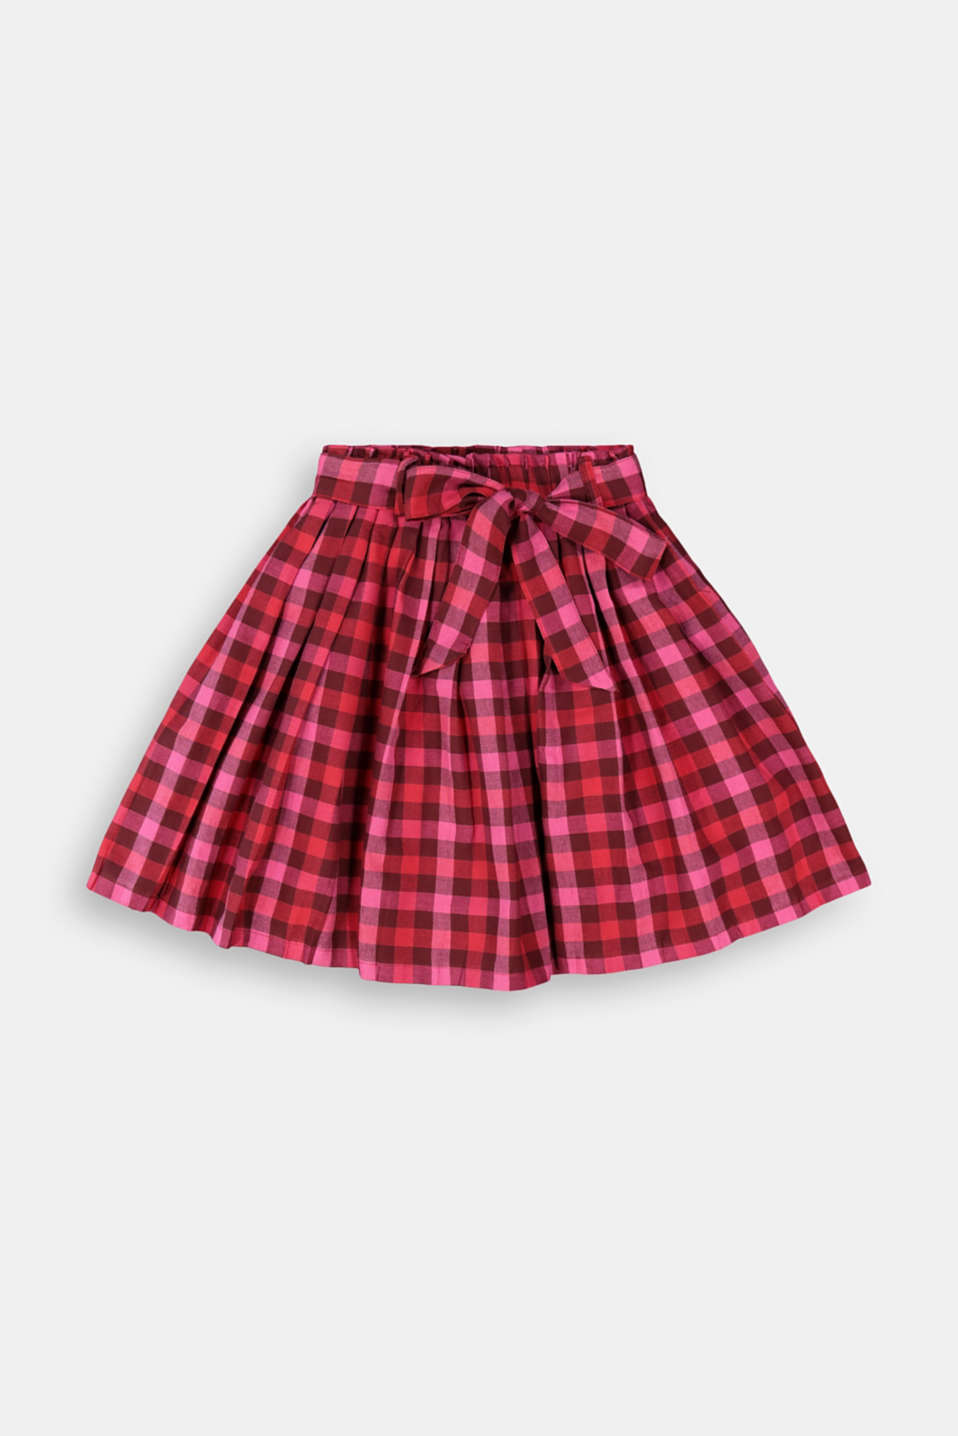 Esprit - Check pleated skirt with an elasticated waistband